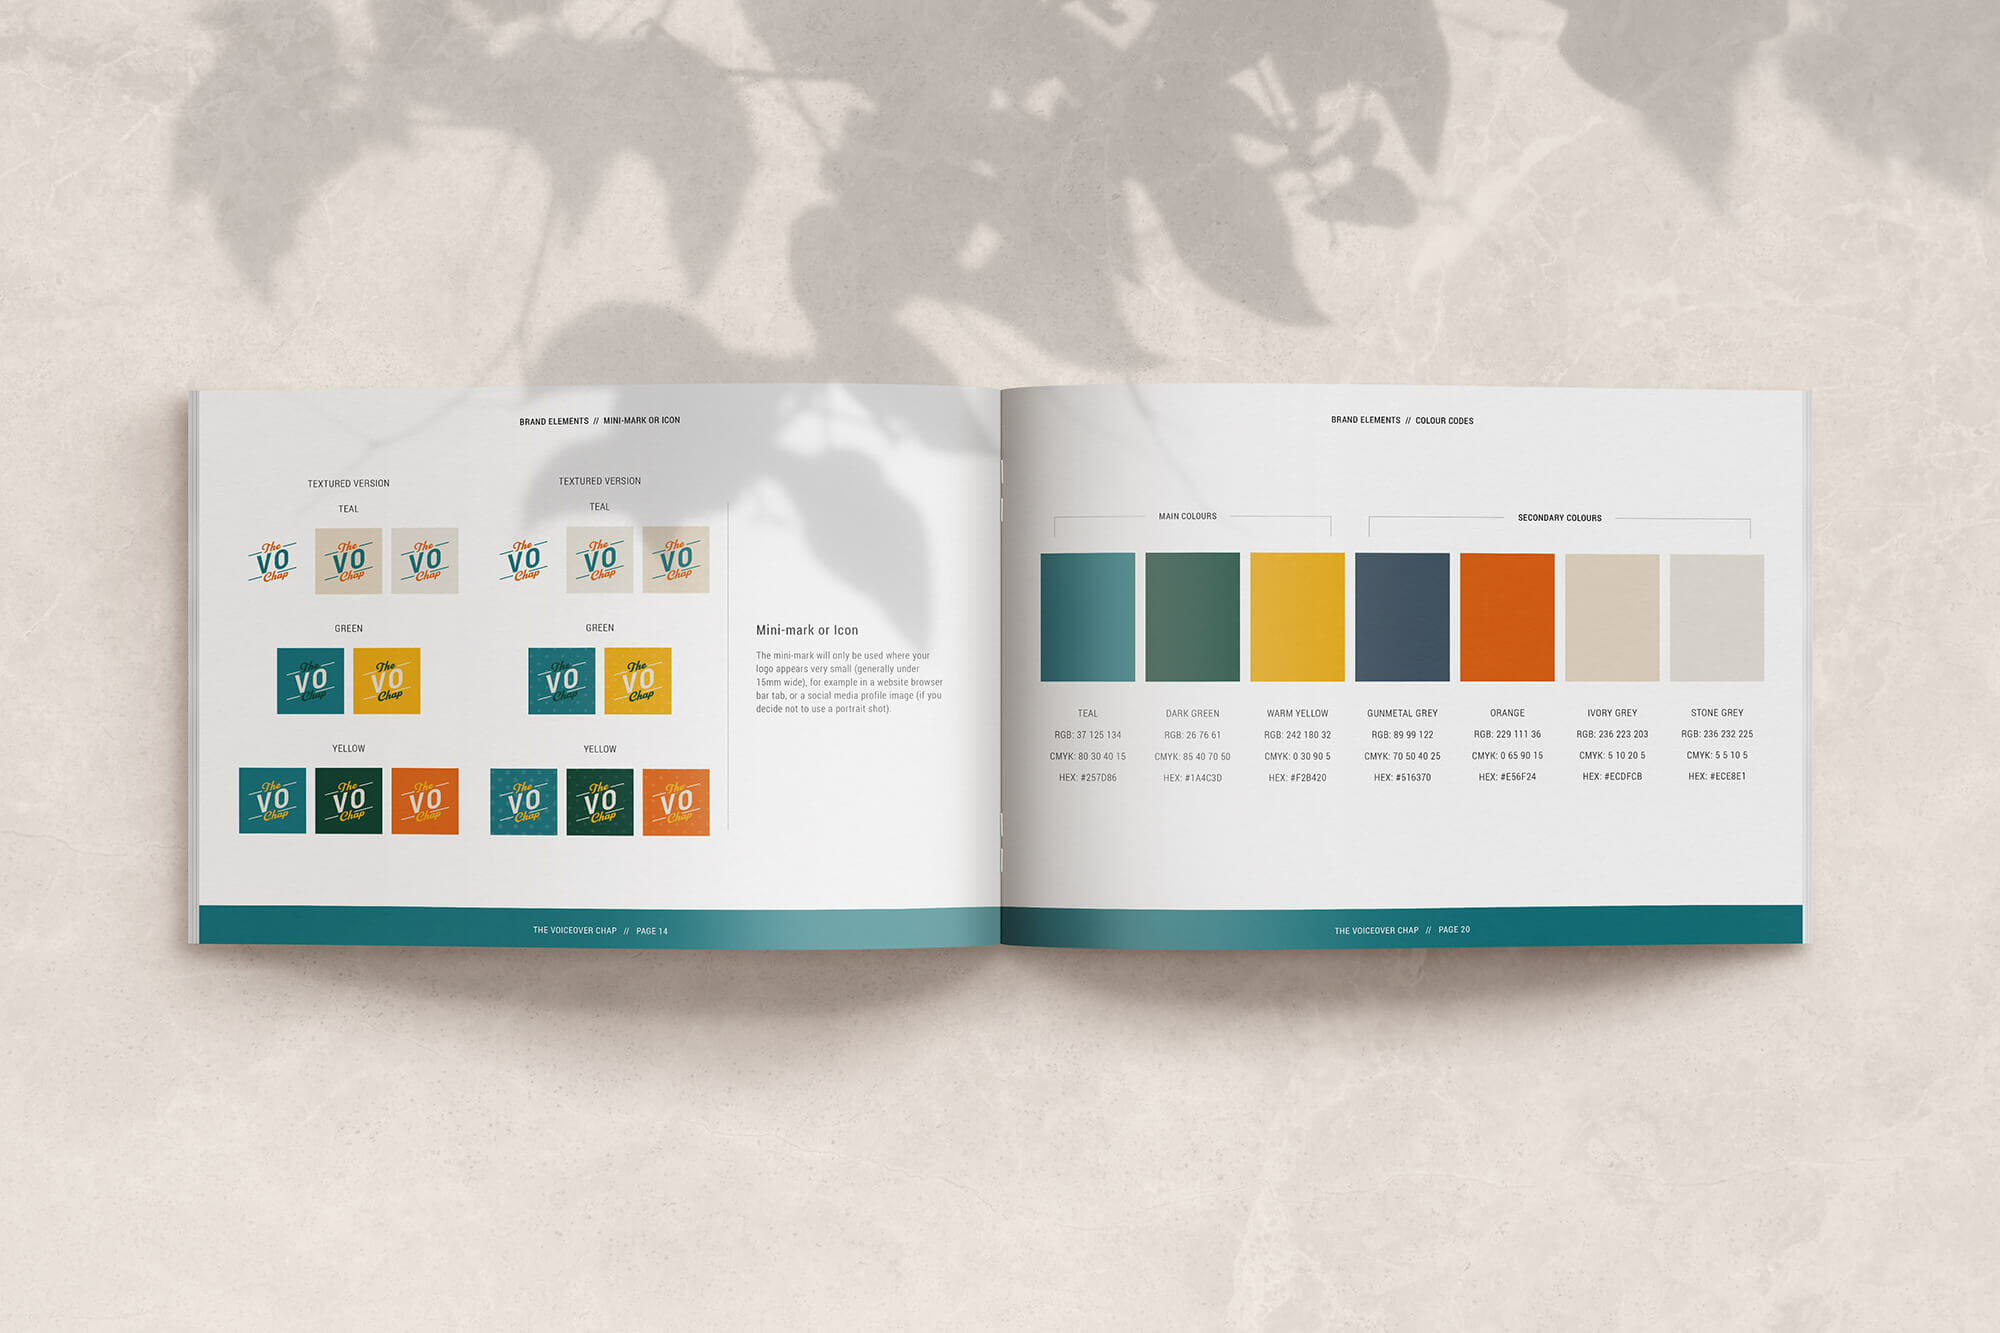 Logo and colours in brand book - branding and website design for The Voiceover Chap Liam Gerrard